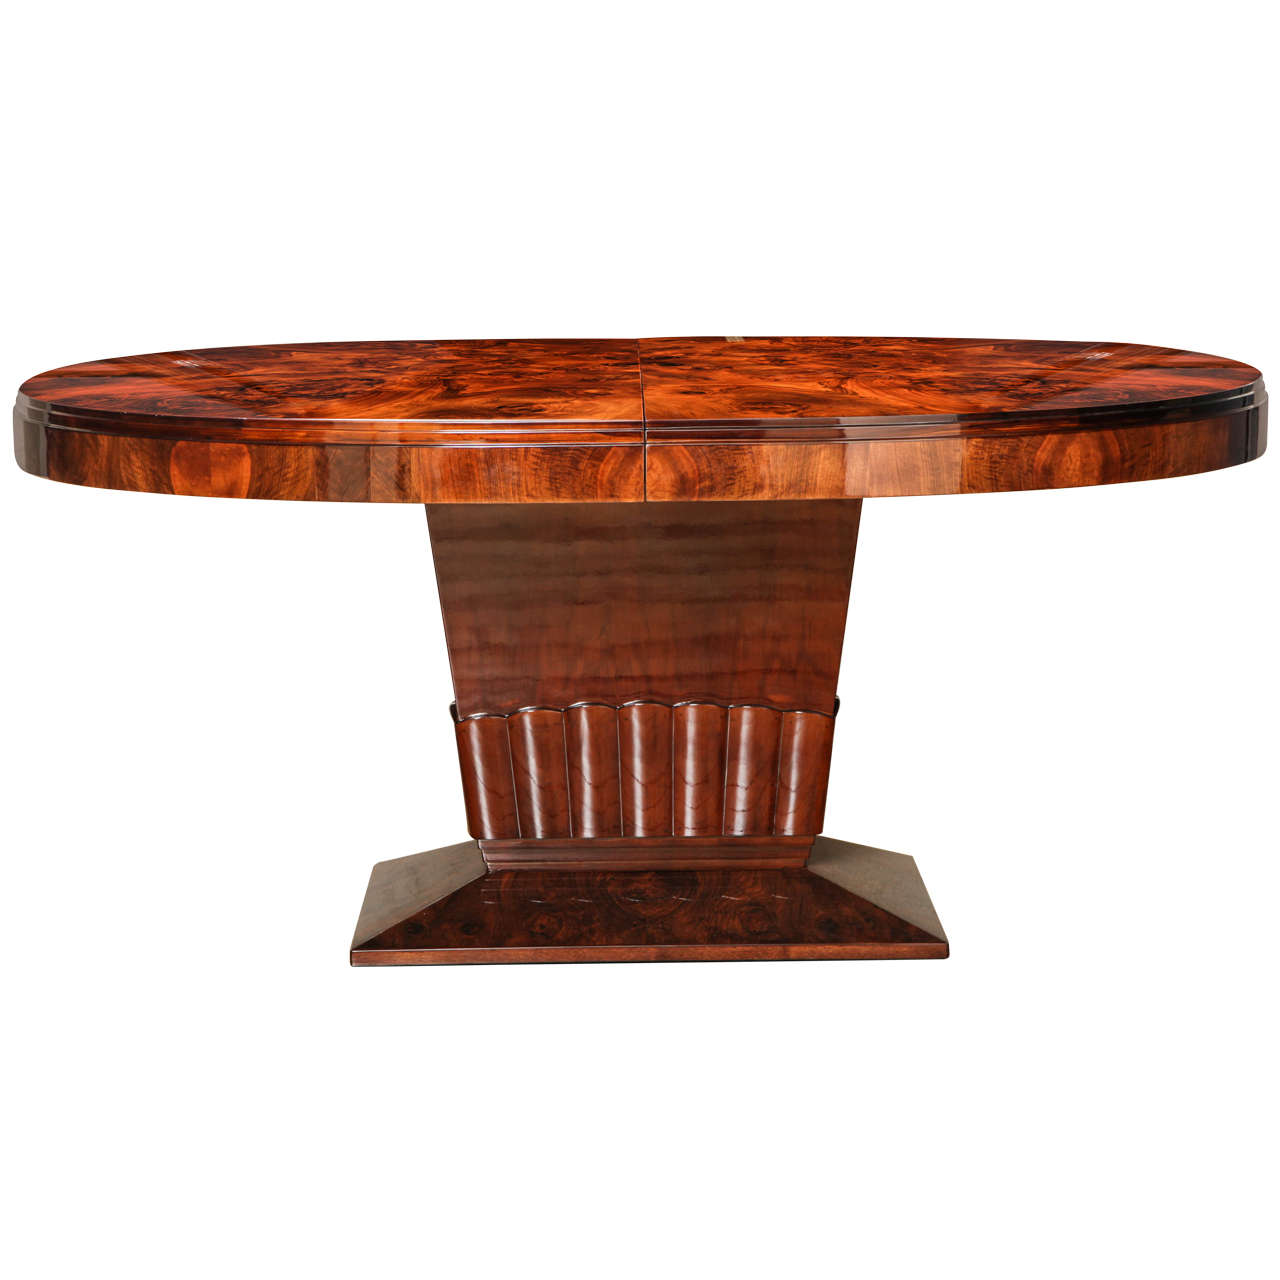 Oval art deco dining table at 1stdibs - Art deco dining room table ...